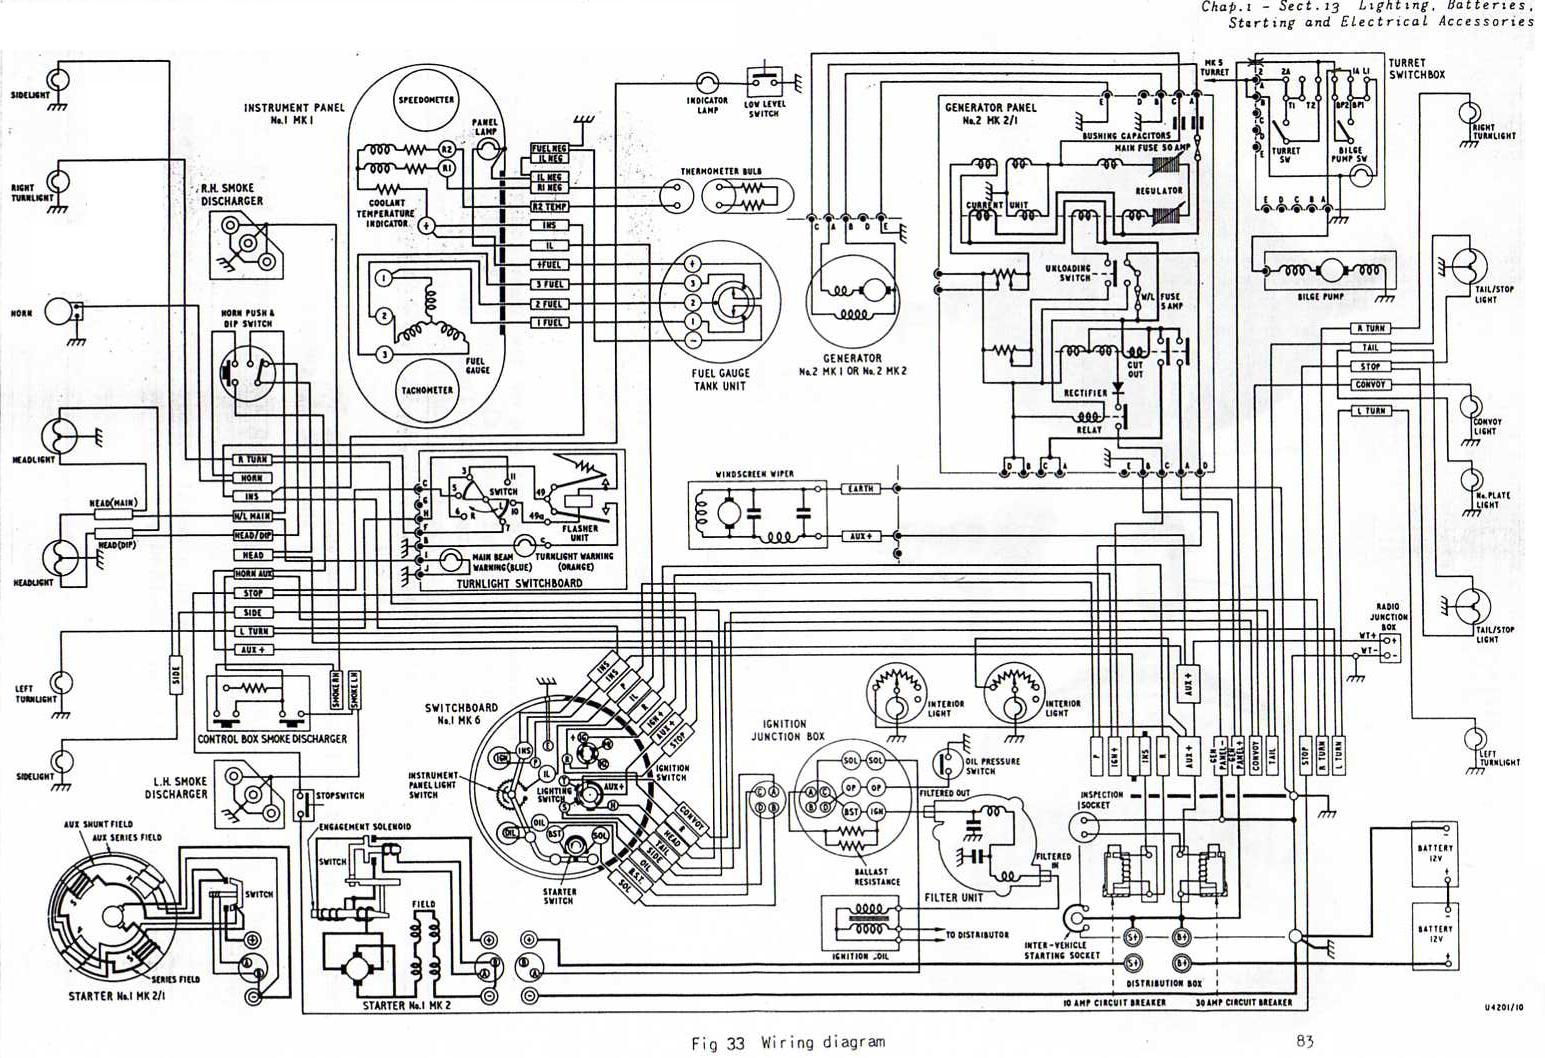 Ad Aged June 2015 1974 Camaro Wiring Diagram How Work Gets Done And Why